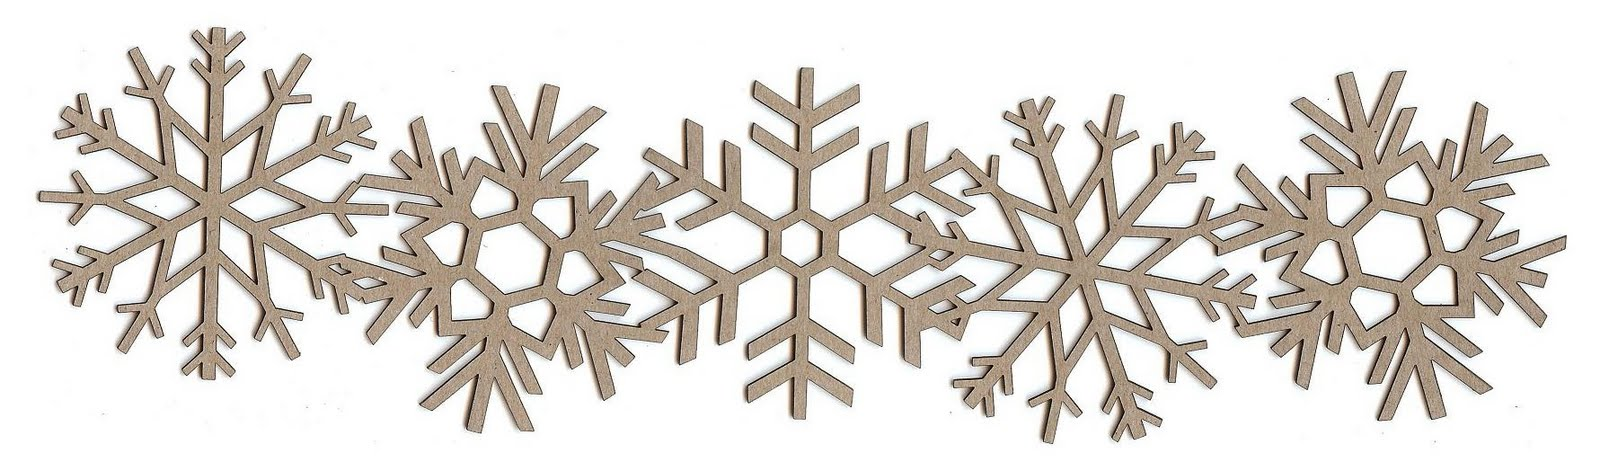 snowflake clipart border - Clipground - snowflake borders for word